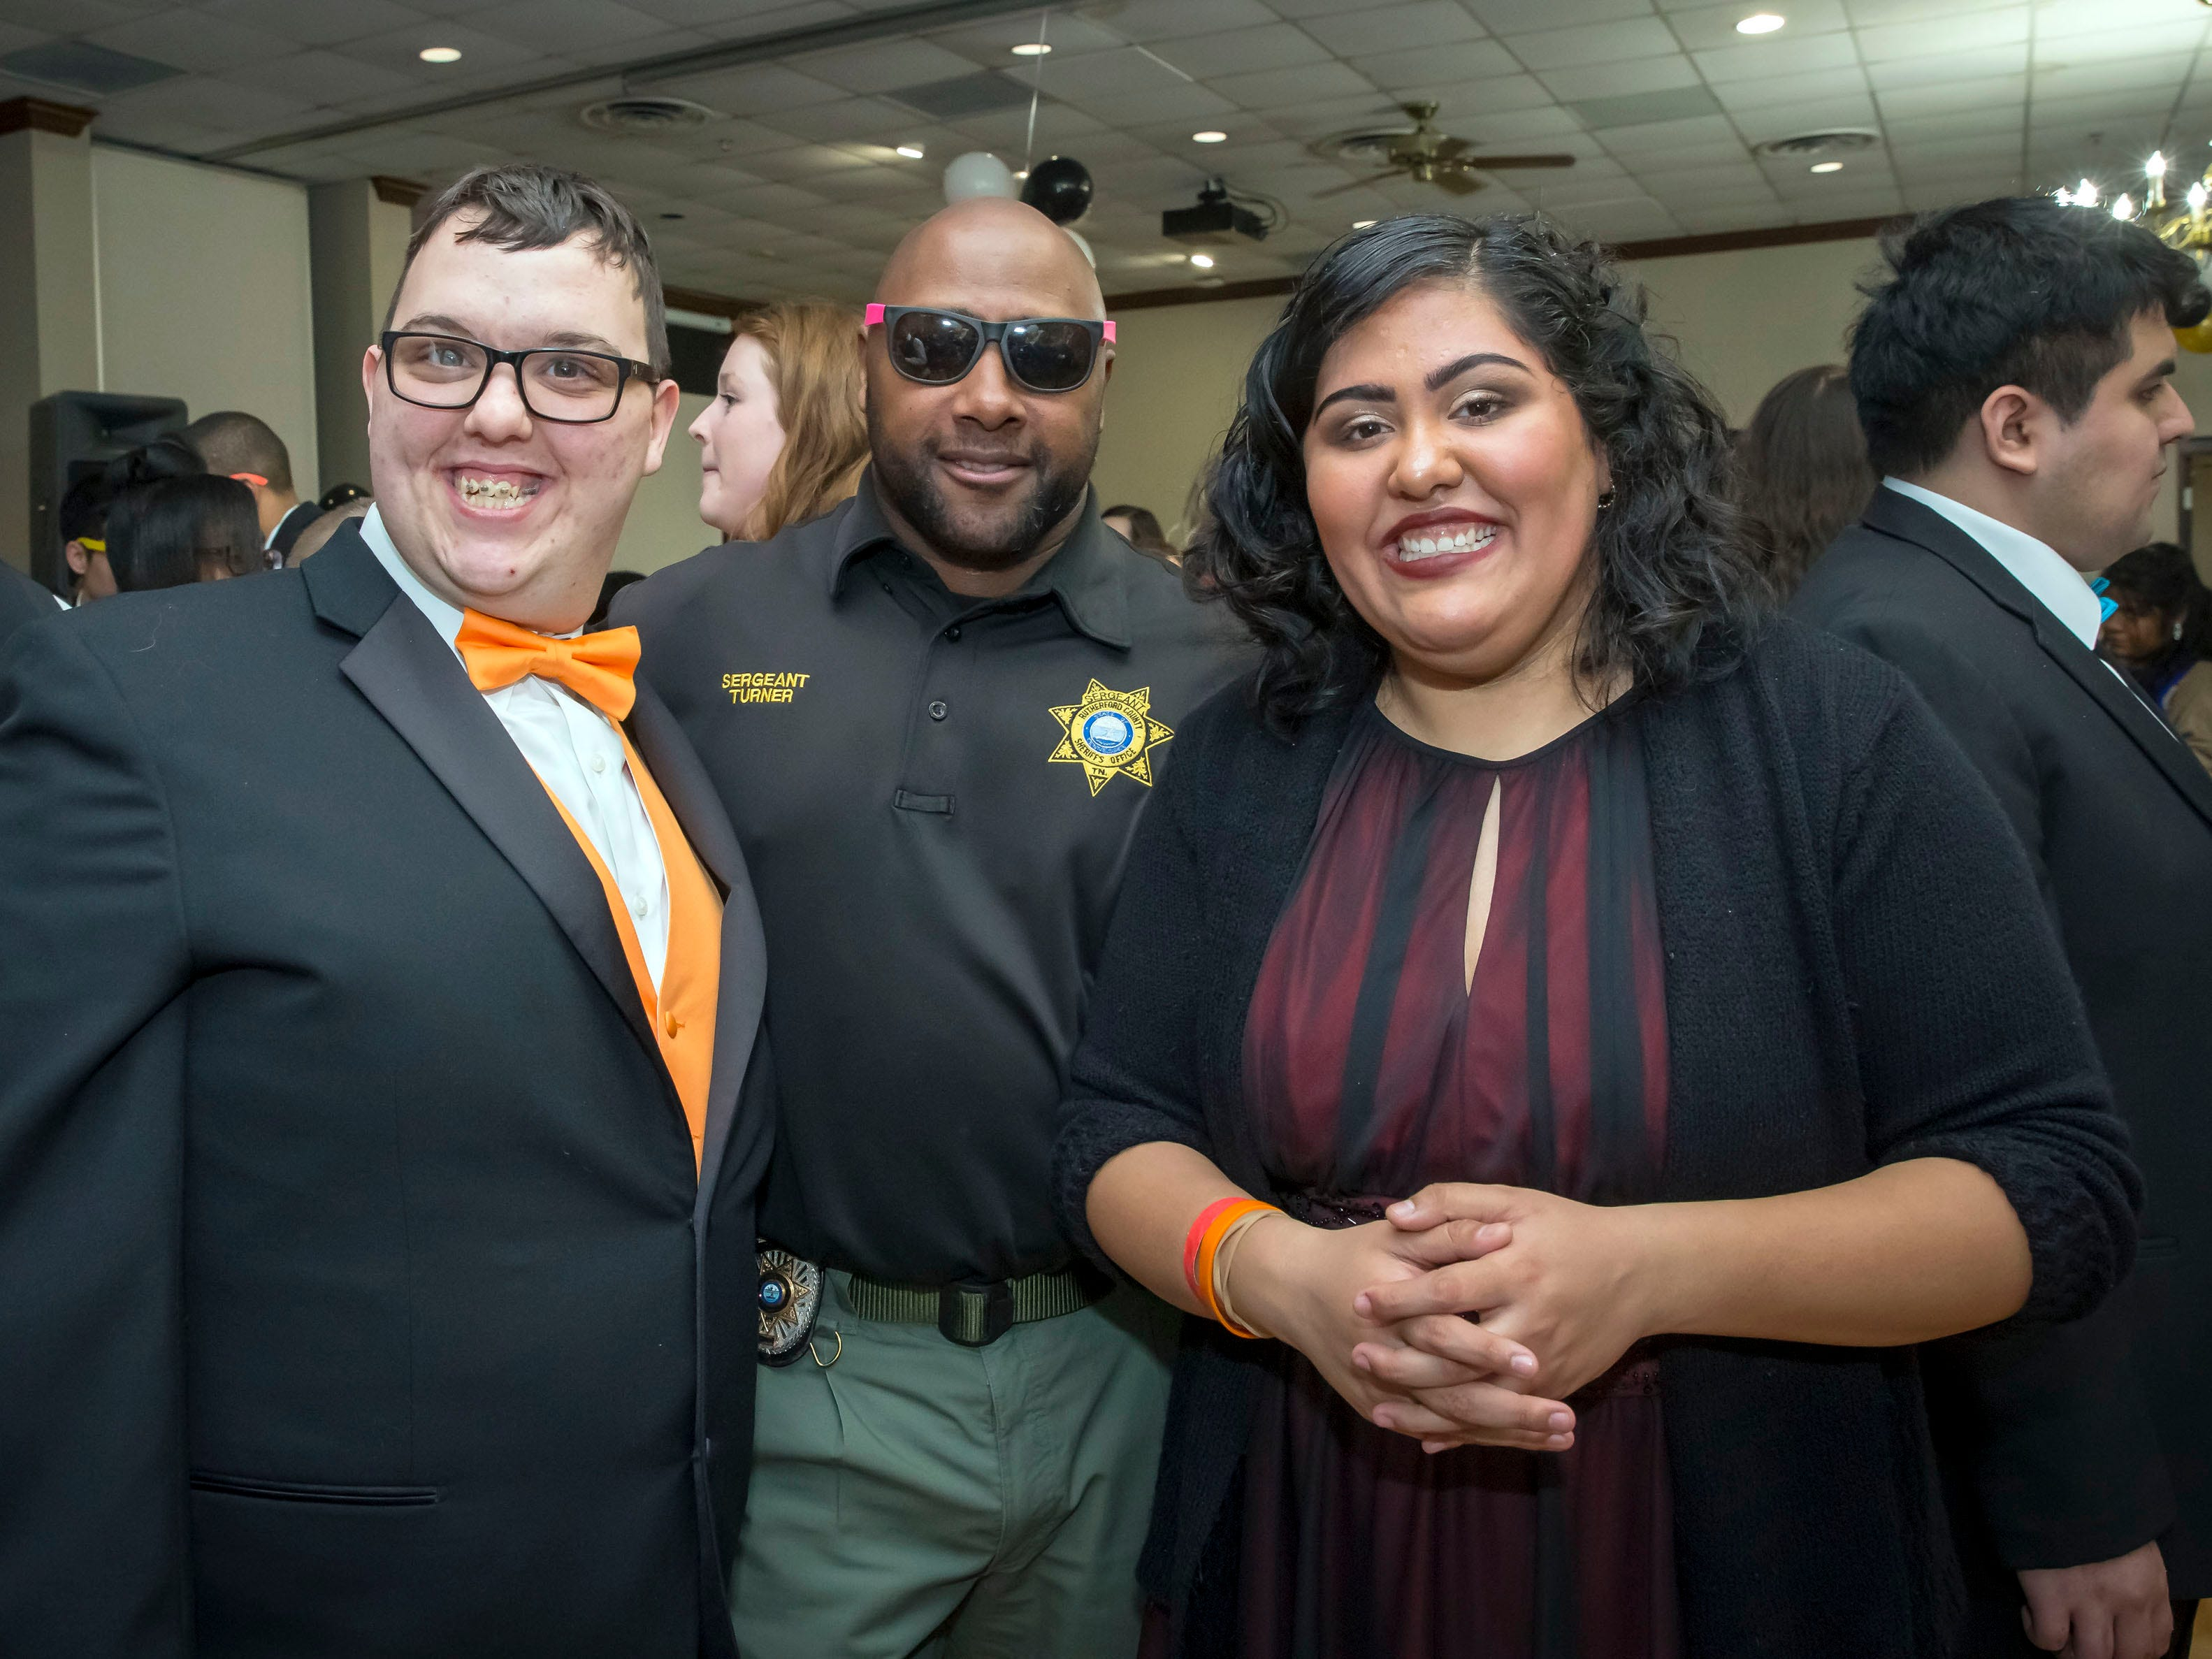 Sgt. Turner and Leslie Fernandez at the Rutherford County Schools special needs prom held at Smyrna Event Center.